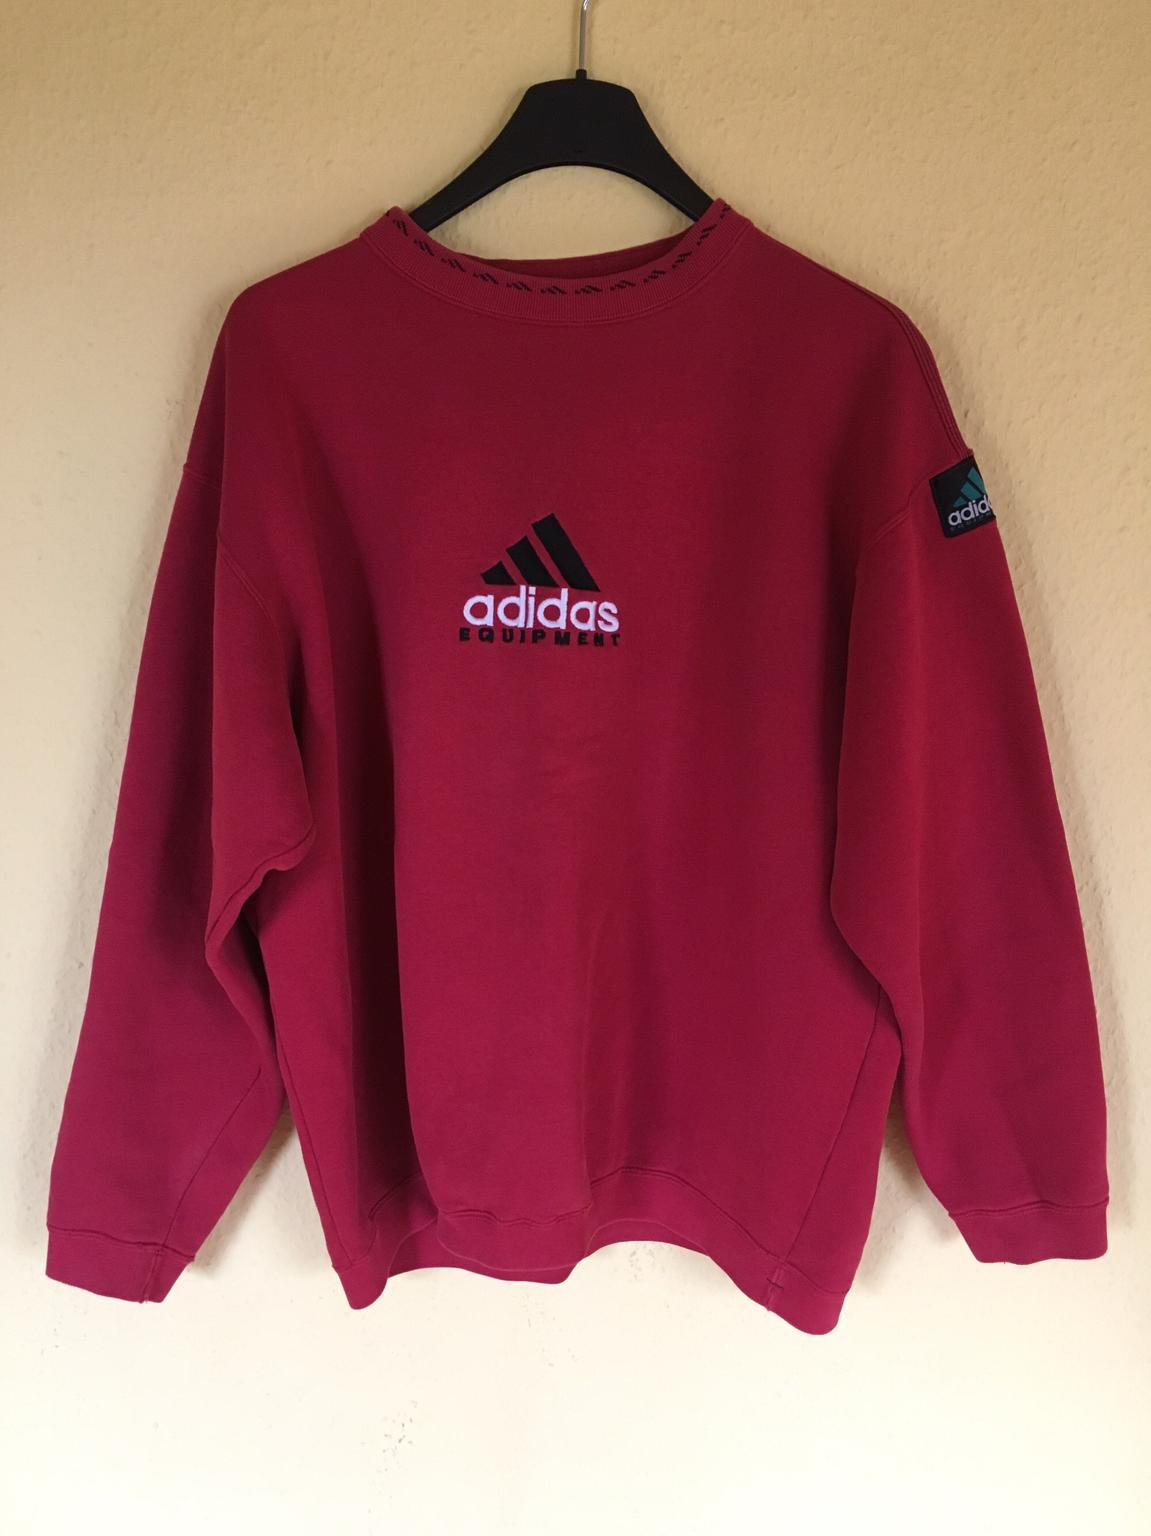 canto aislamiento Parcial  Adidas Equipment Pullover Vintage/Retro 90s in 40229 Düsseldorf for €50.00  for sale | Shpock